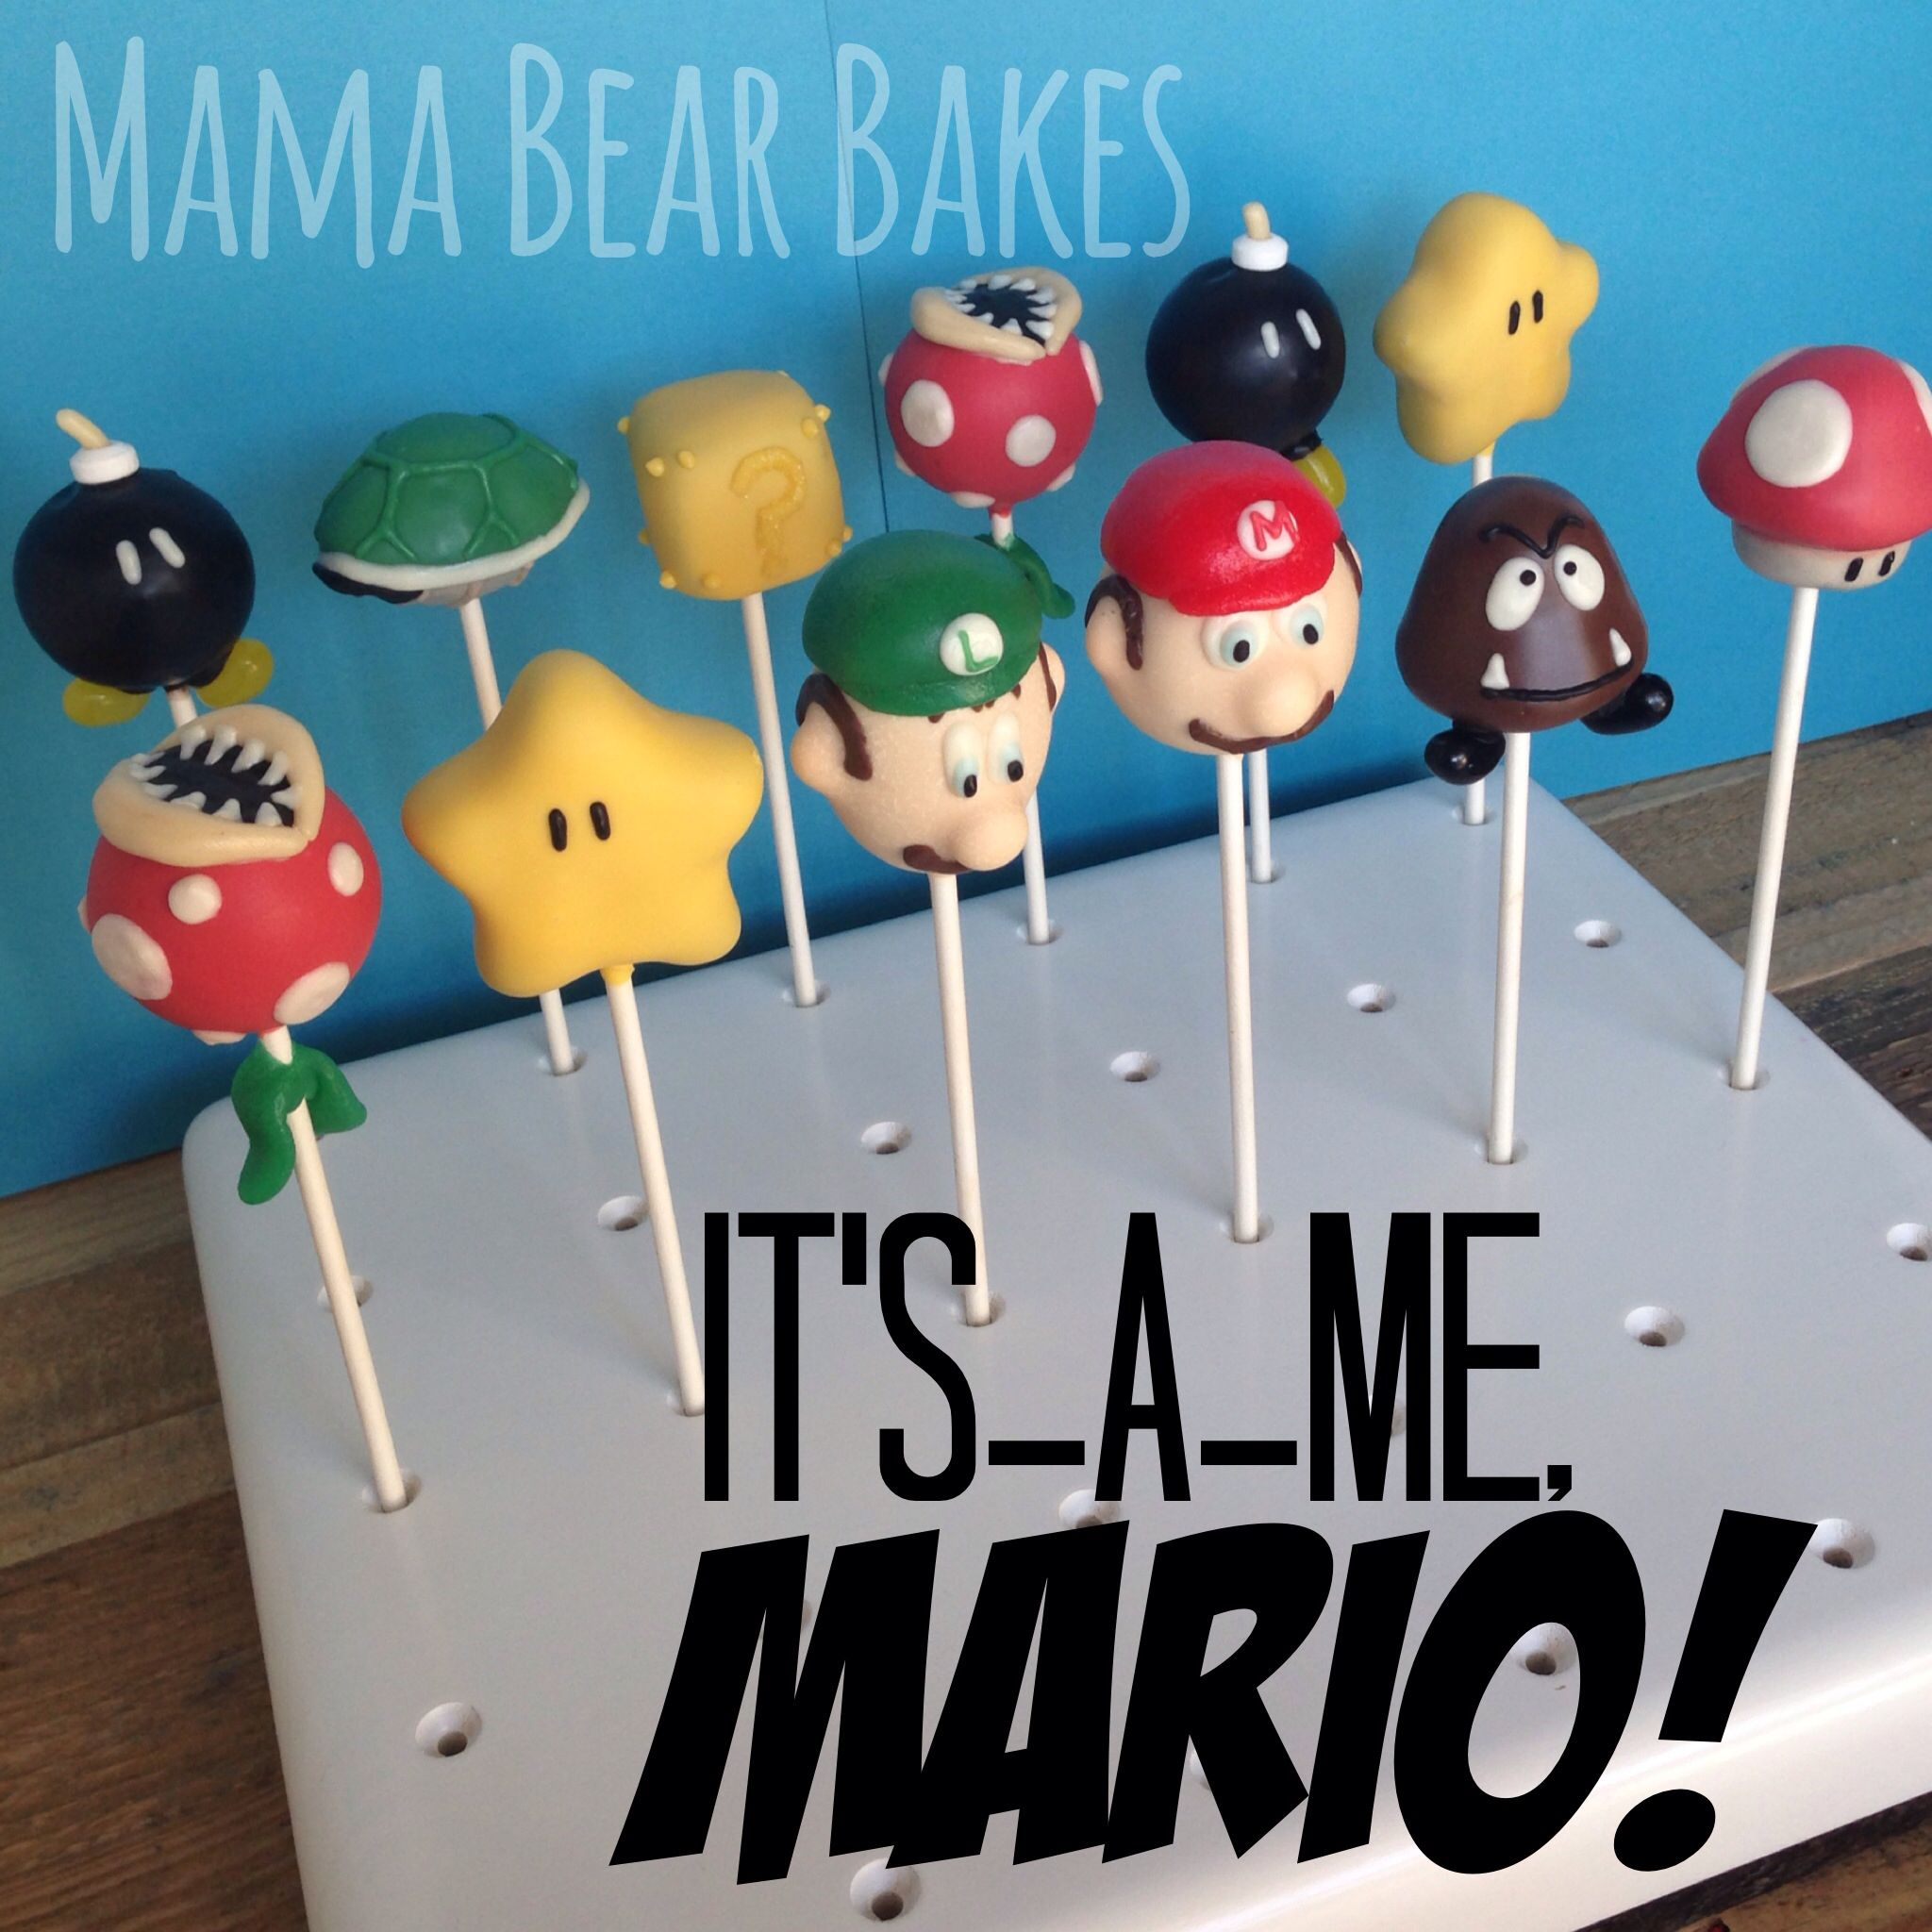 Super Mario Bros Cake Pops From Mama Bear Bakes Perfect For A